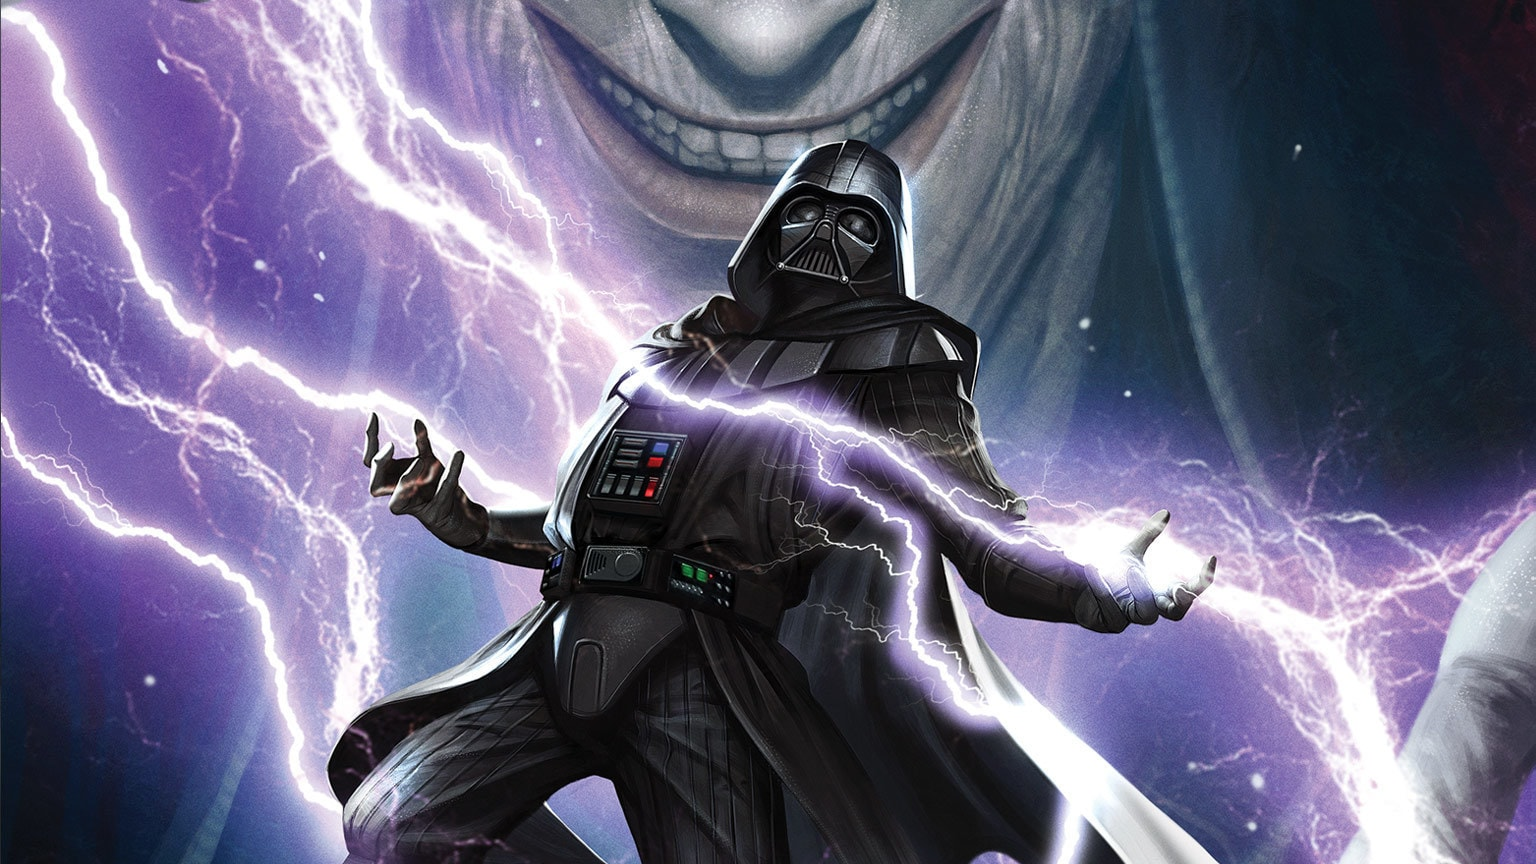 The Emperor's Wrath Awakens in Marvel's Darth Vader #6 – Exclusive Preview